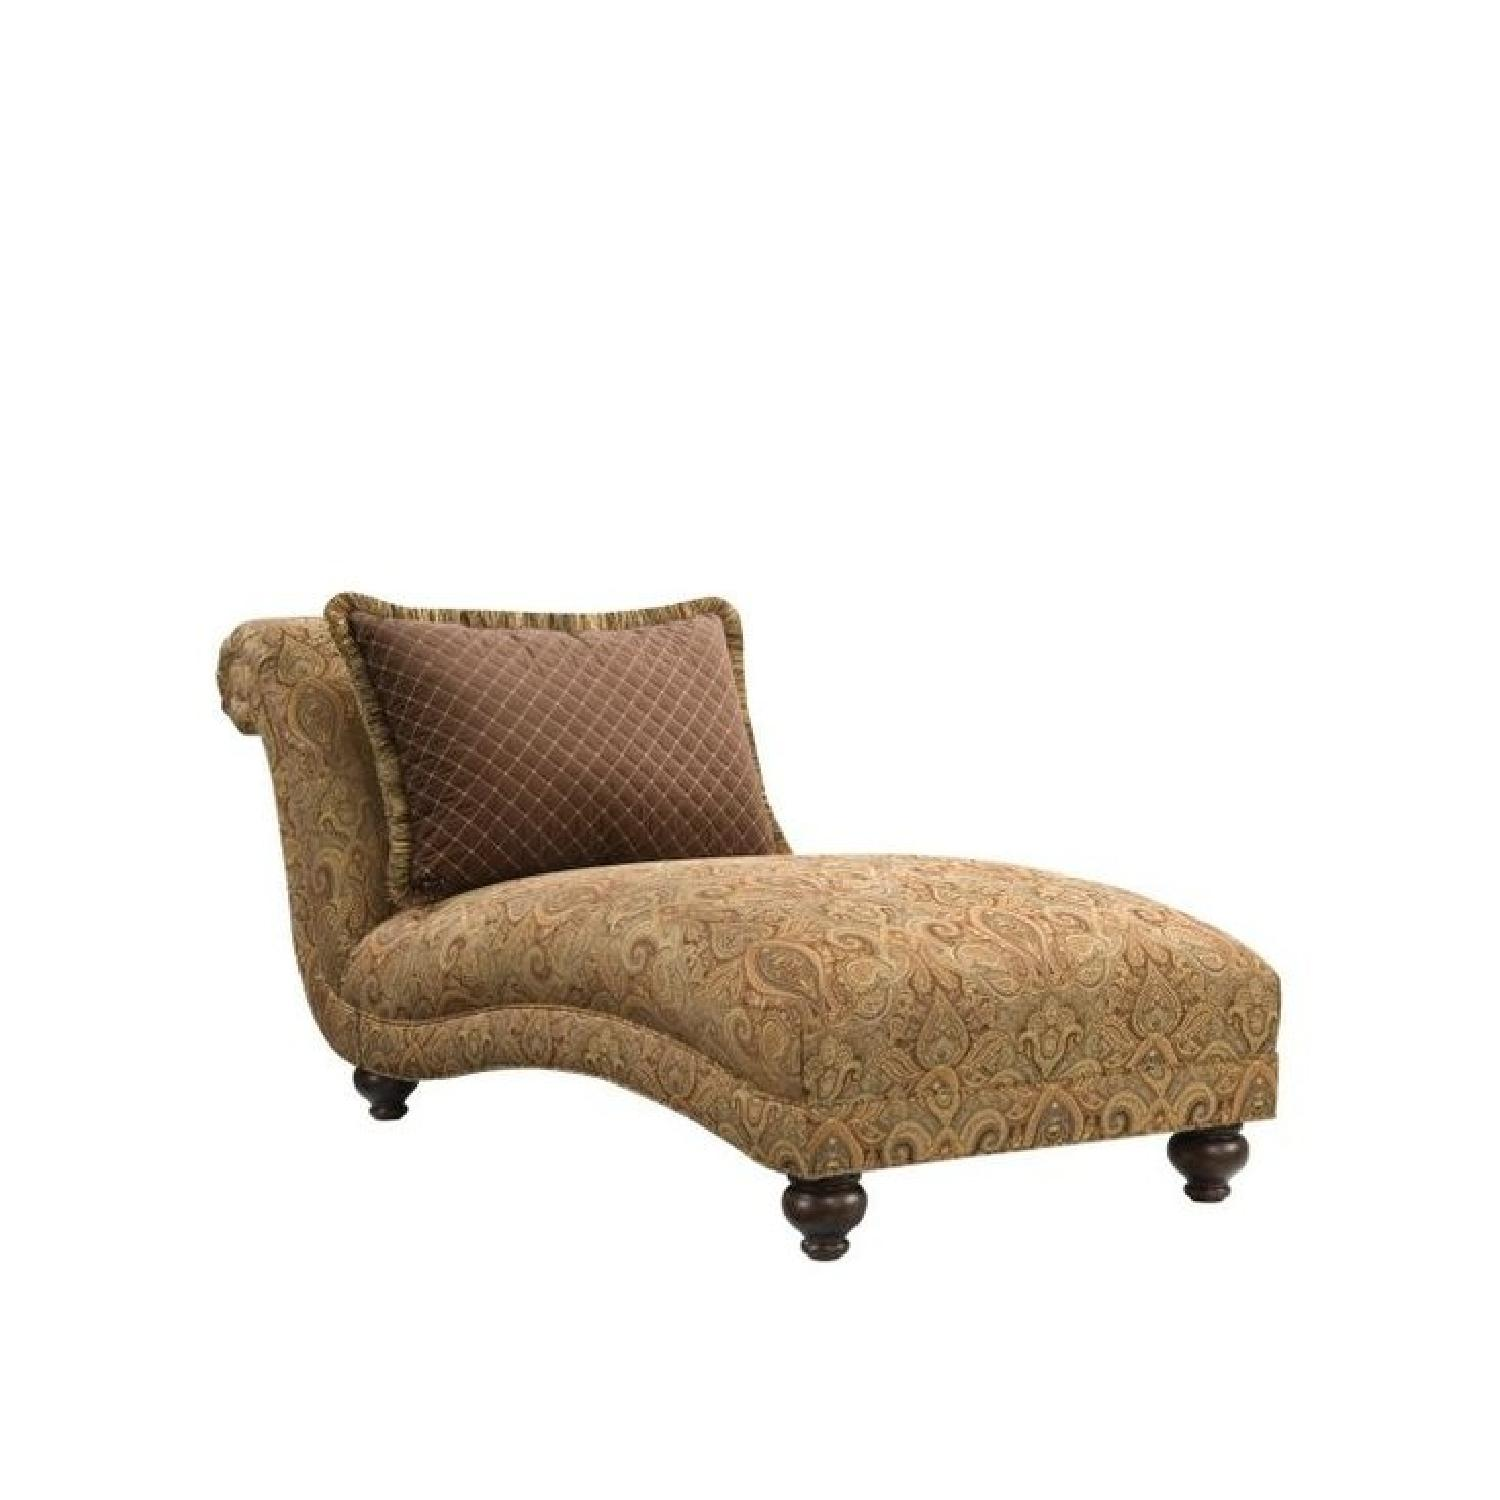 Cindy Crawford Collection Armless Chaise Lounge - image-0